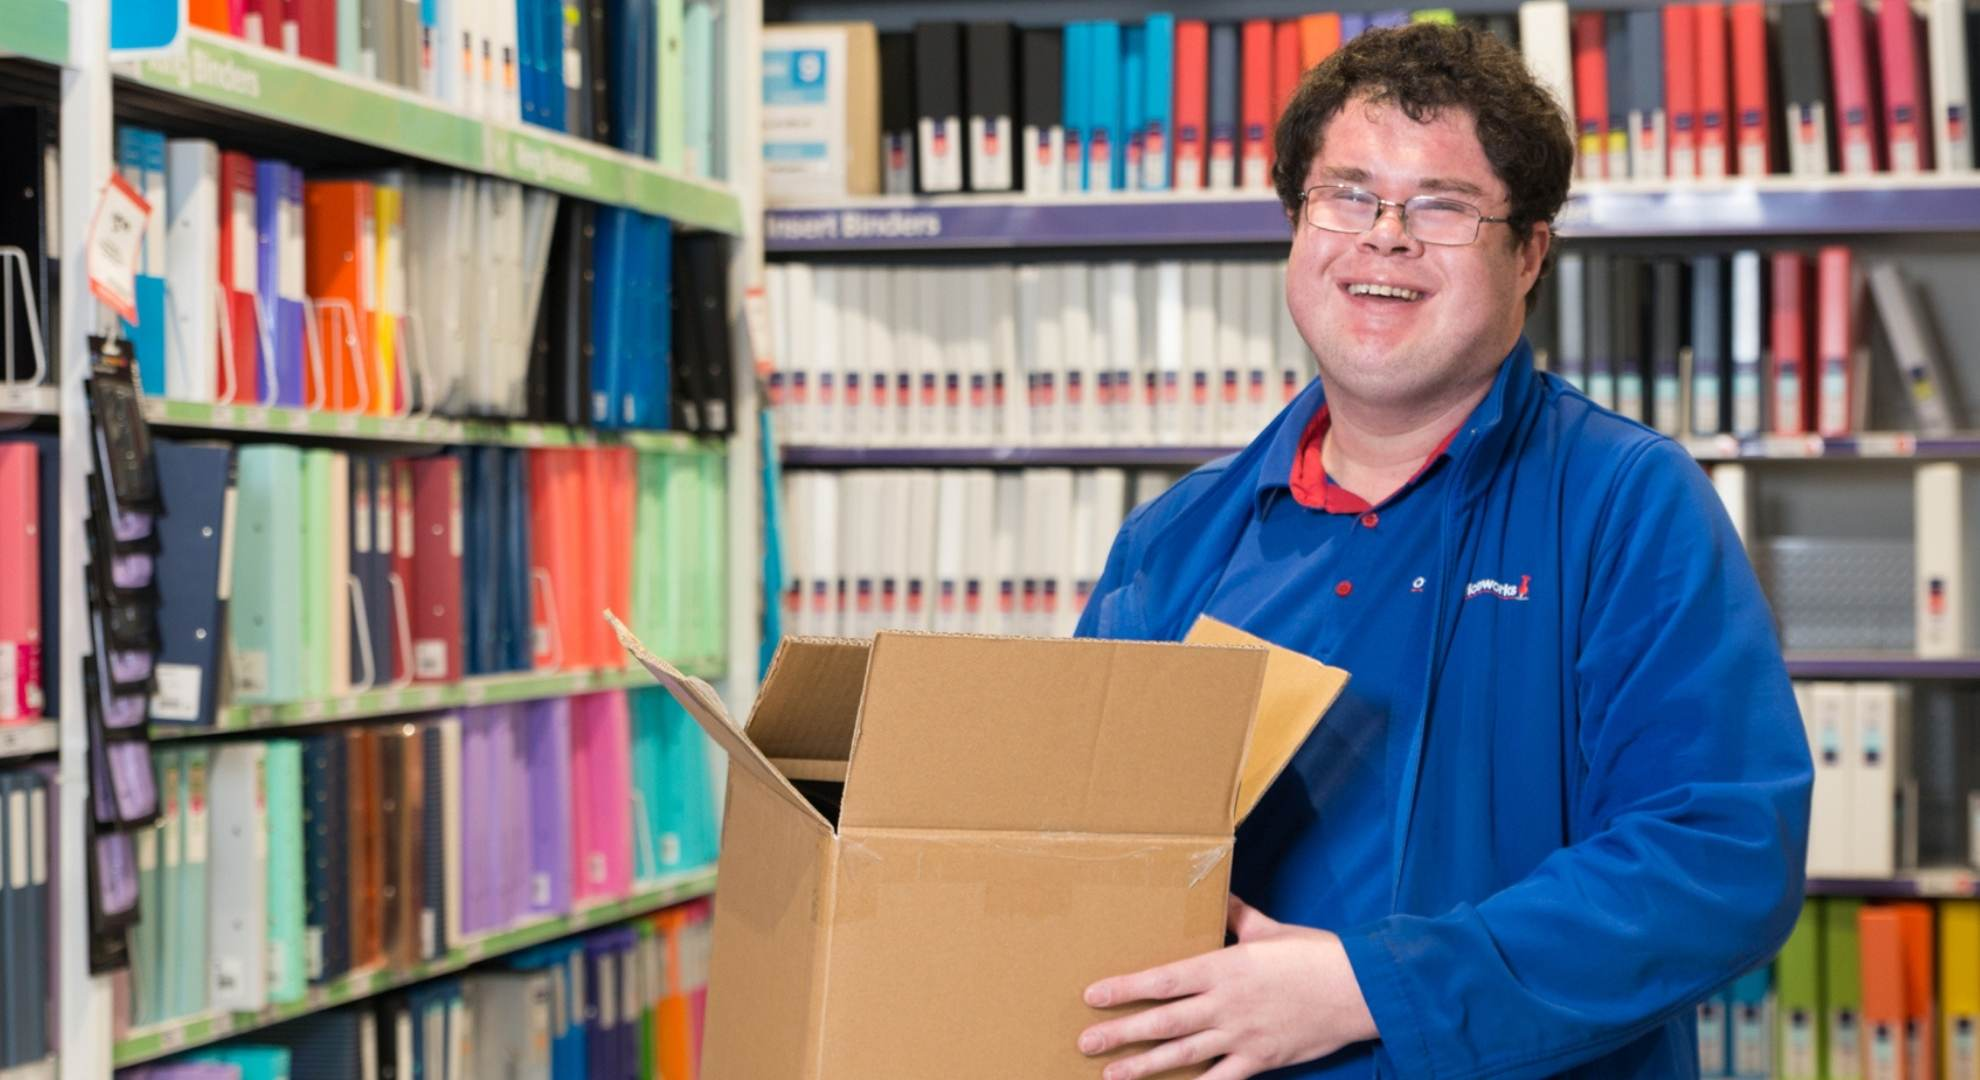 Job Seeker, Josh, is holding a cardboard box standing in the isle with all the file binders. Josh is wearing his Officeworks uniform.